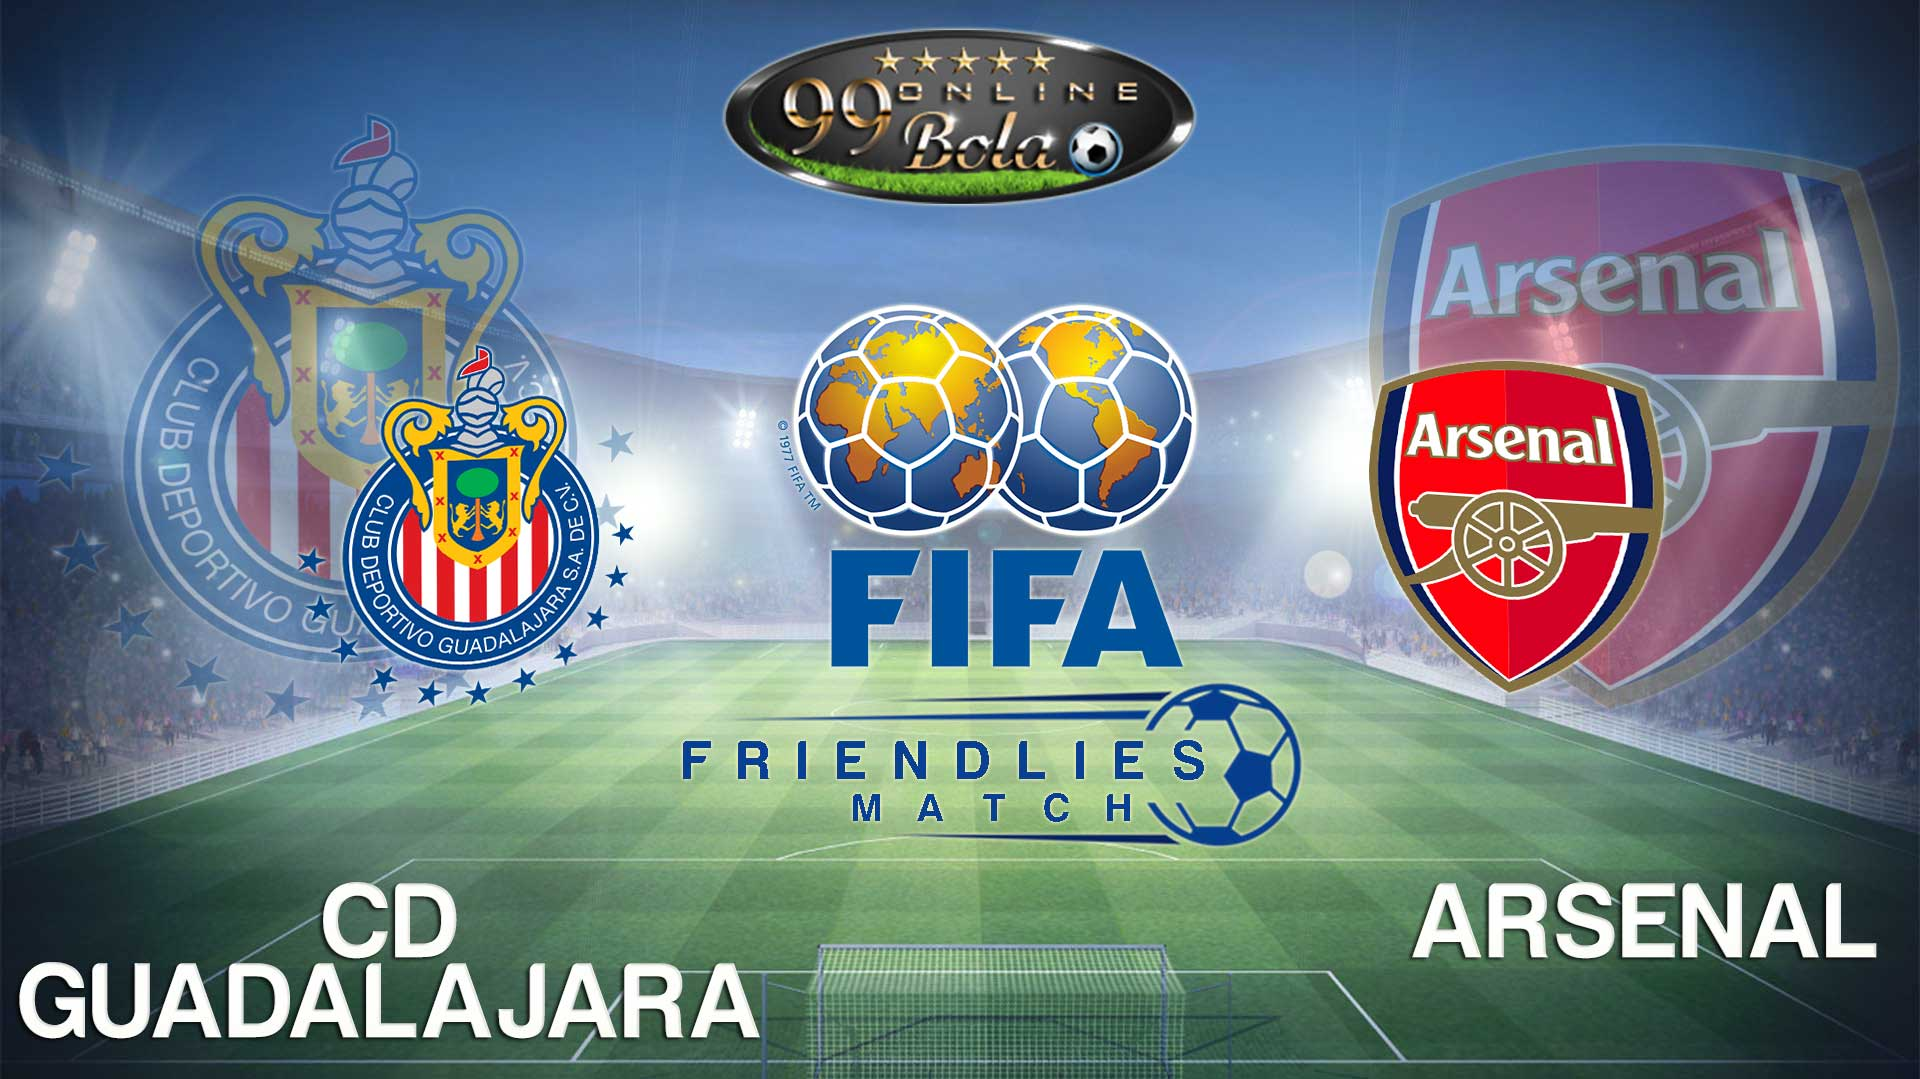 CD-Guadalaraja-Vs-Arsenal